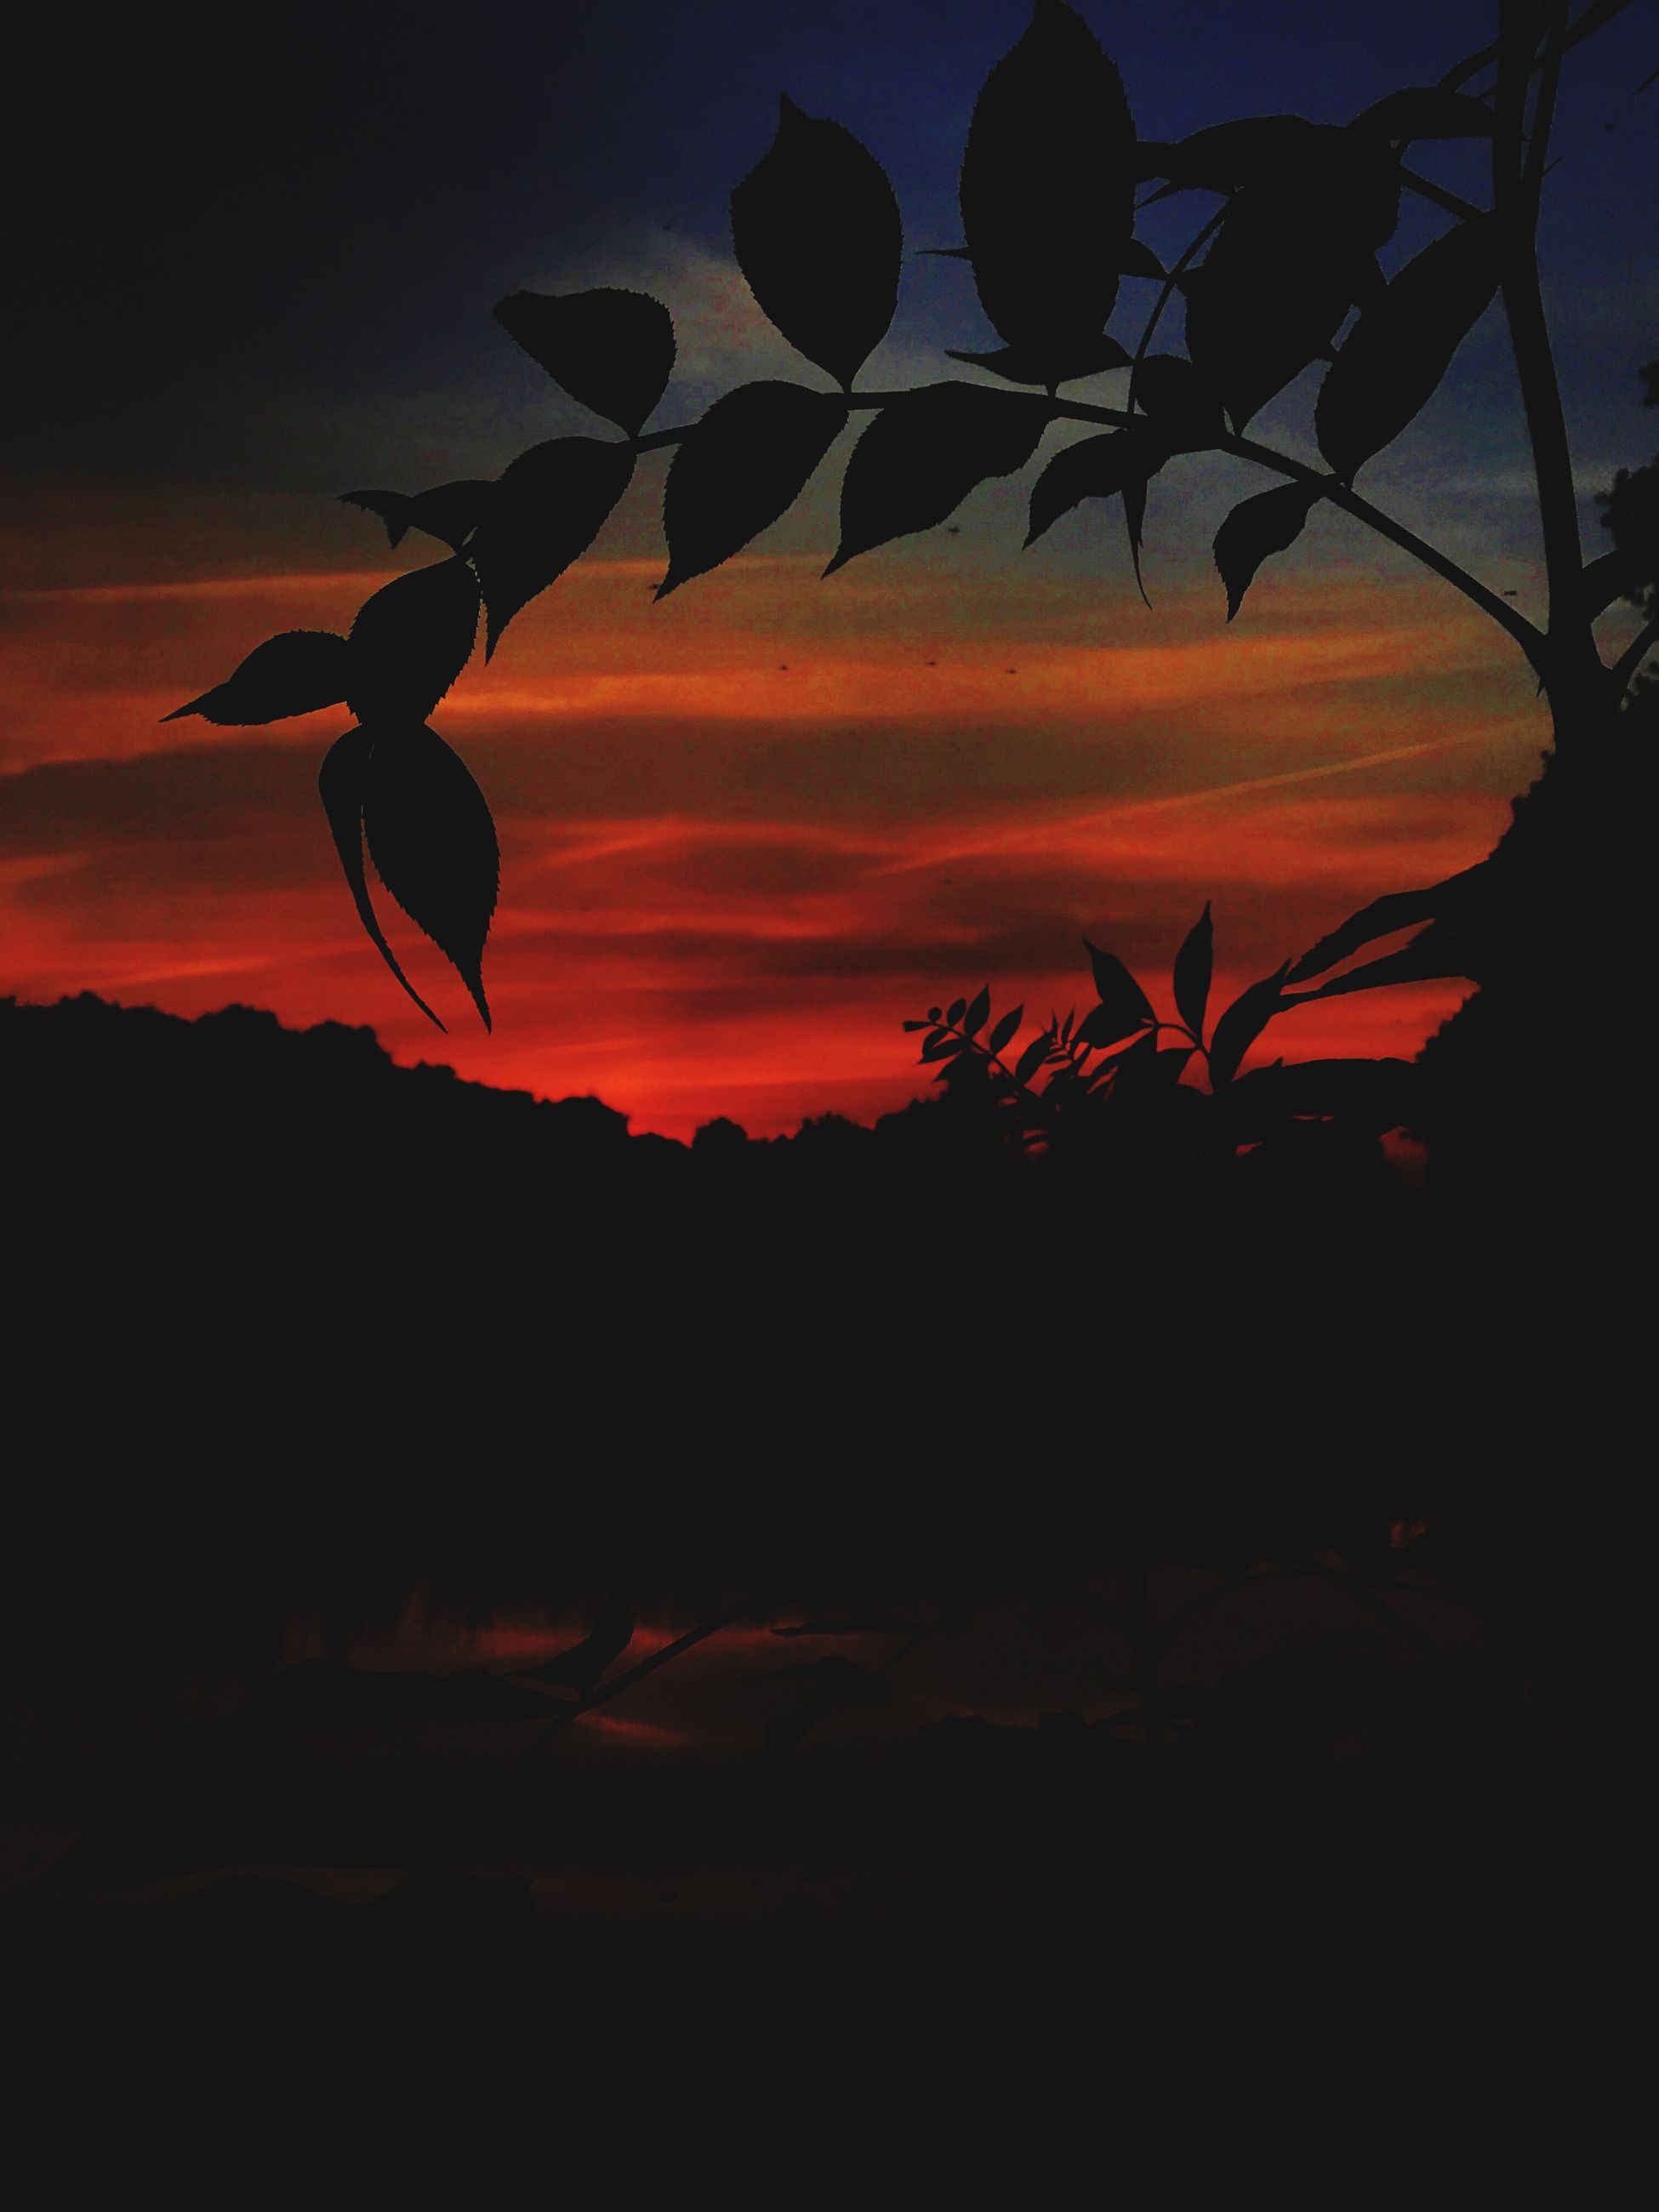 sunset, silhouette, nature, beauty in nature, no people, growth, plant, tree, tranquil scene, scenics, sky, tranquility, outdoors, close-up, day